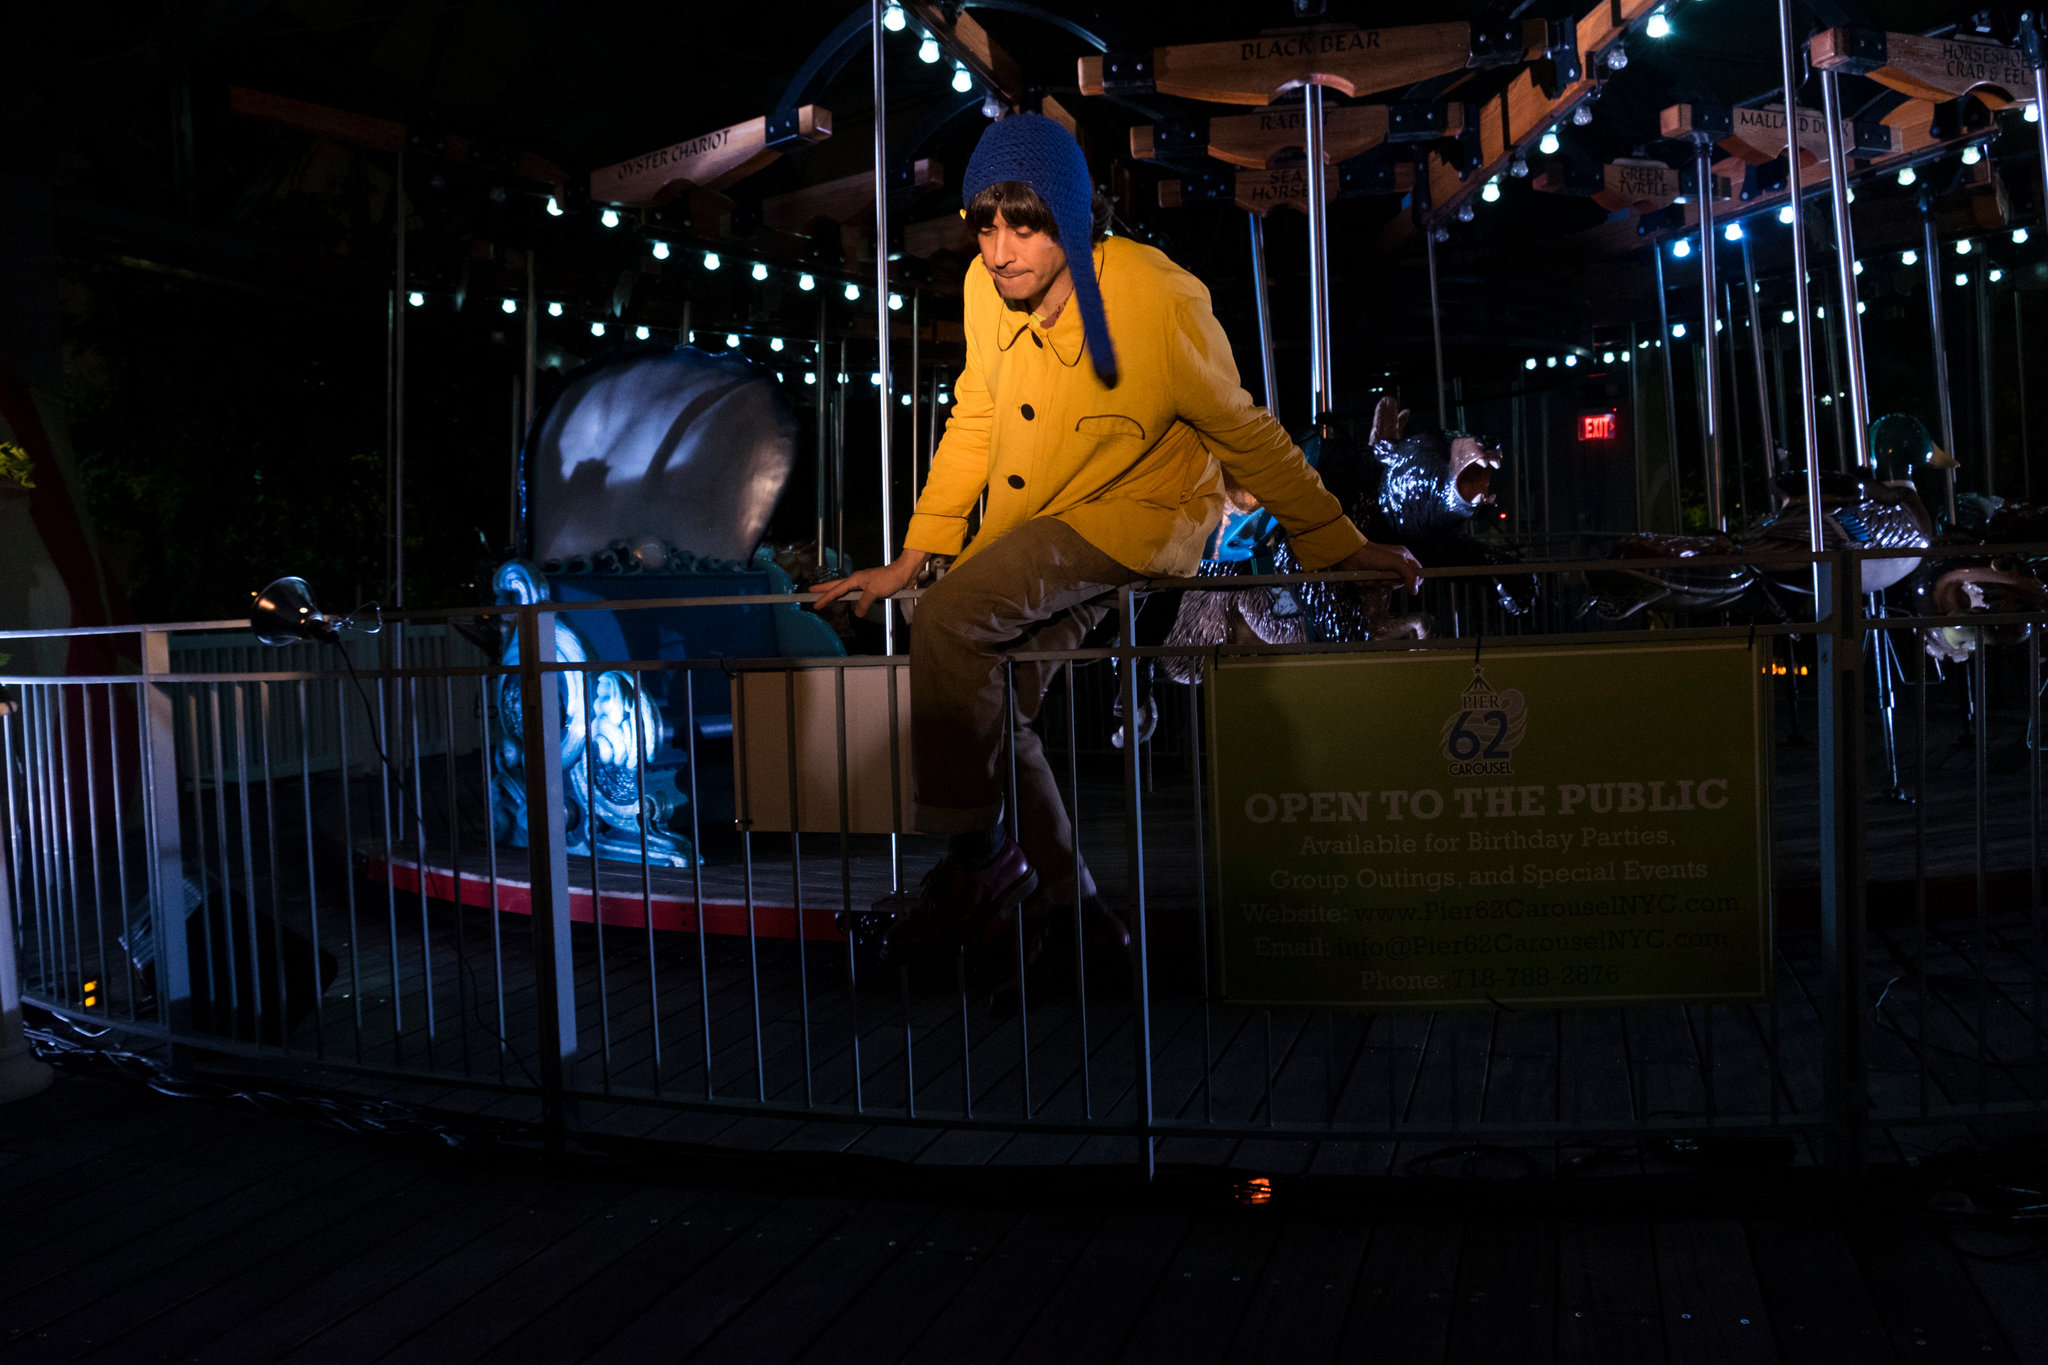 """BOSSS 2015 ulian Koster, who played a musical saw, starred in """"Night, Janitor, Carousel,"""" set at the carousel at Pier 62. part of Big Outdoor Site-Specific Stuff, or BOSSS"""